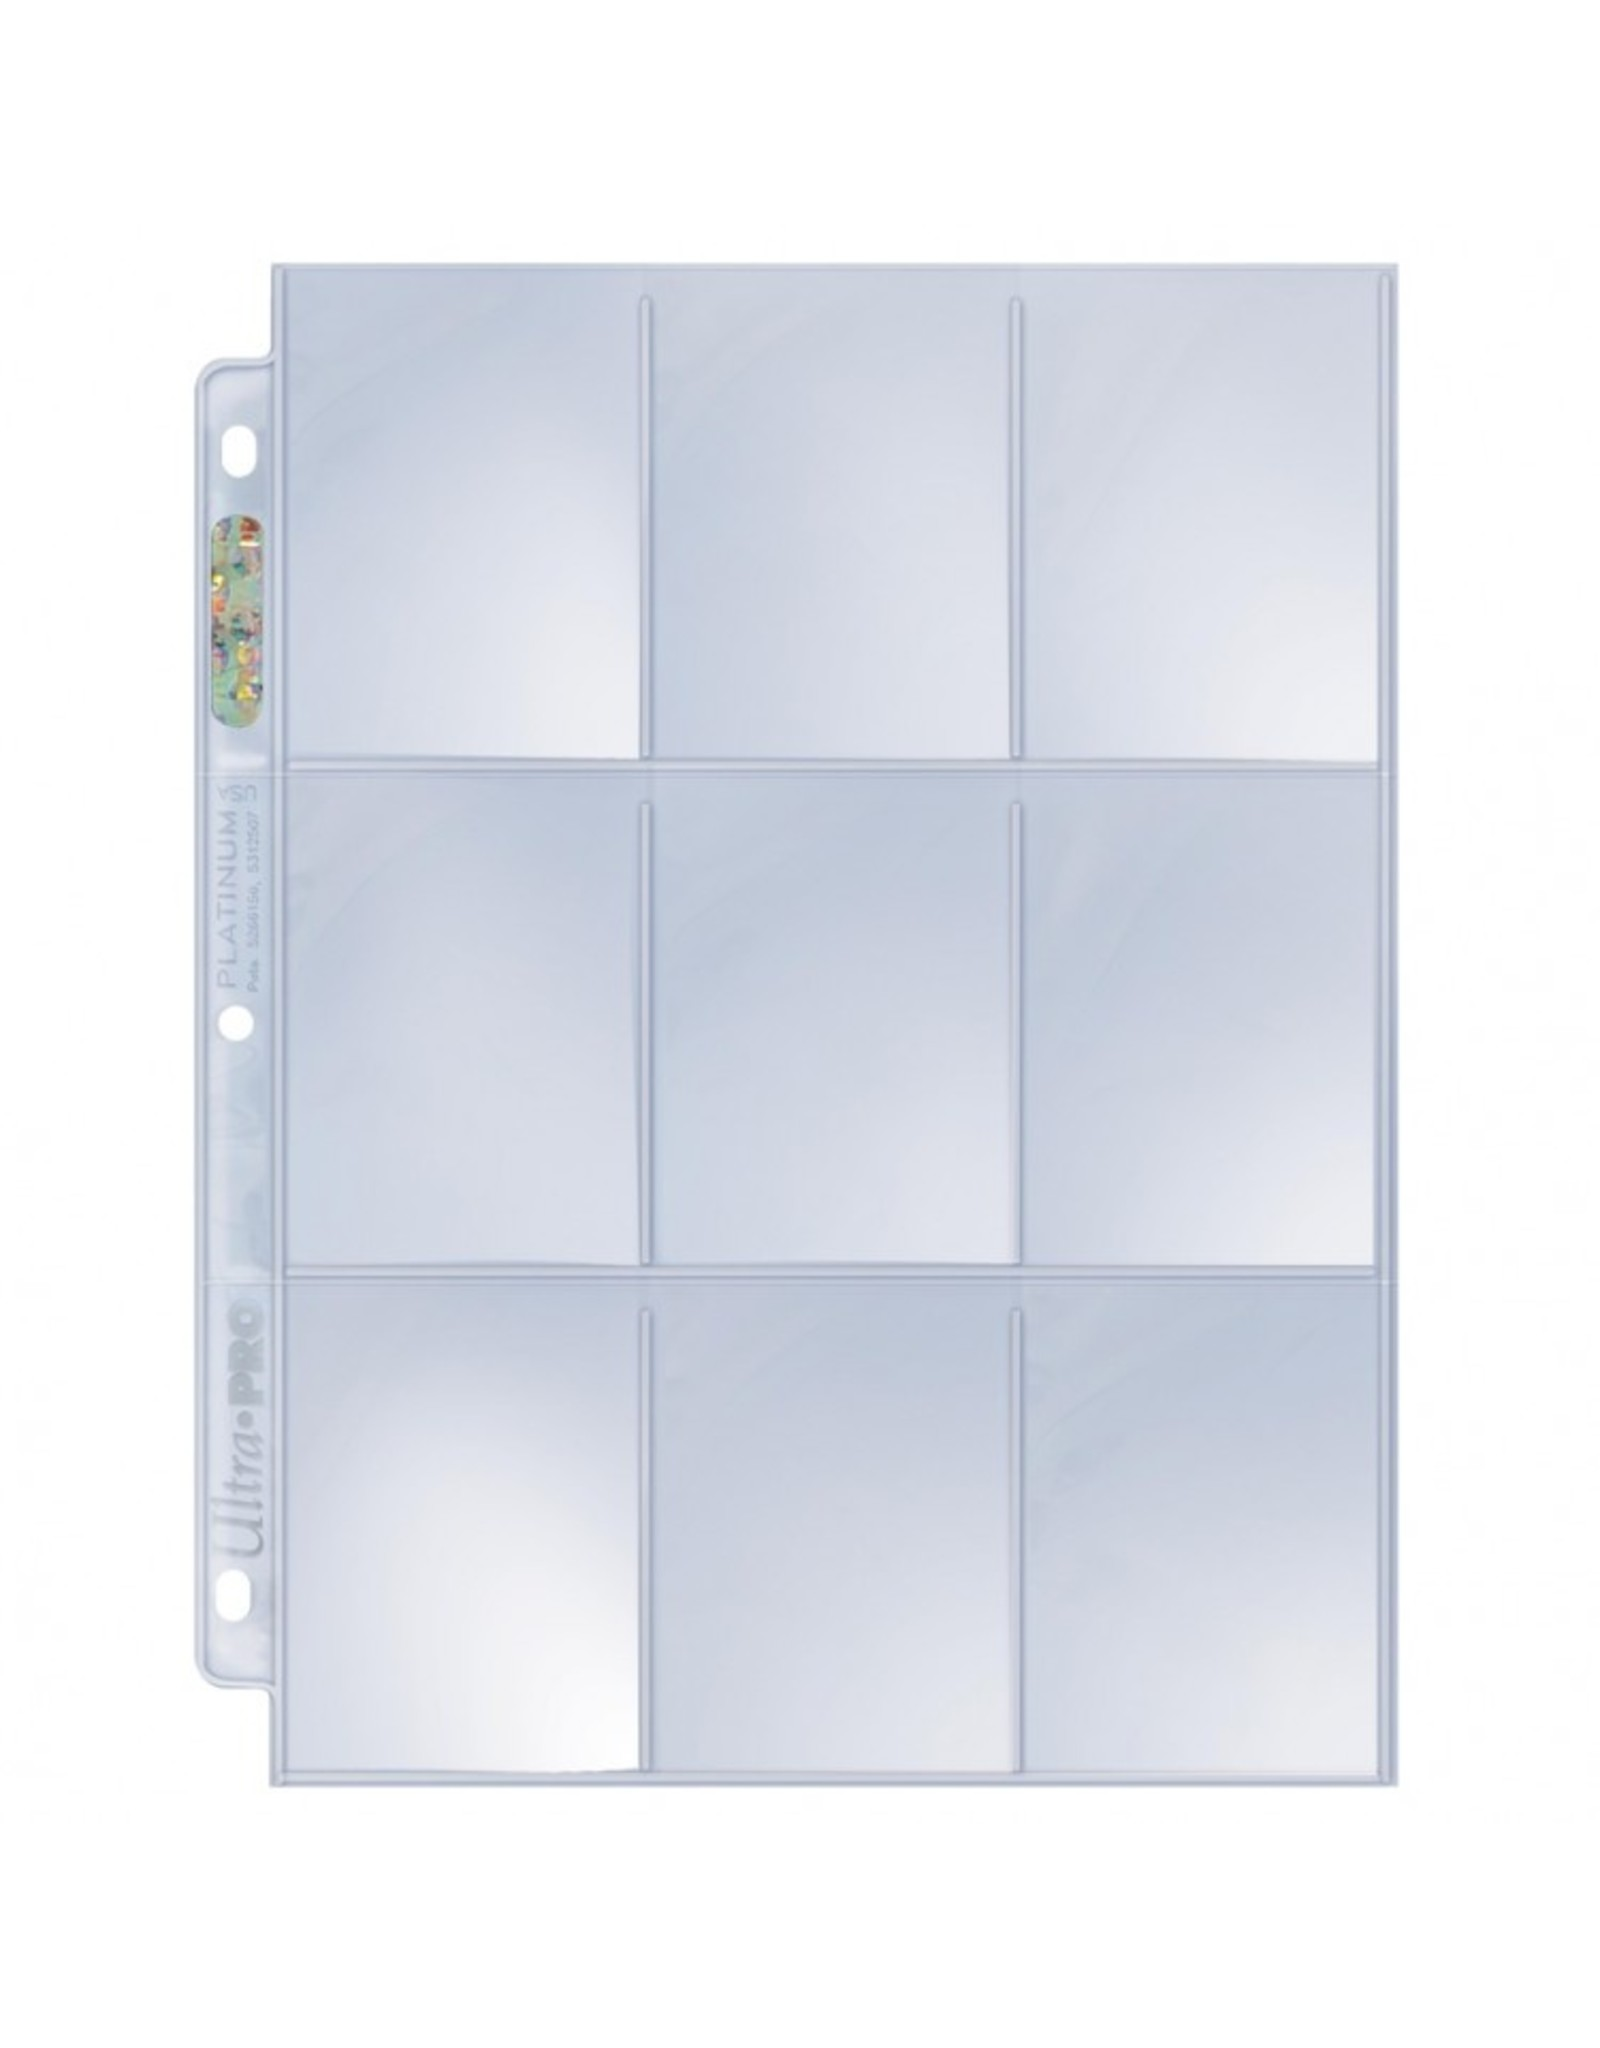 9-Pocket Pages Box of 100 (Top Load)